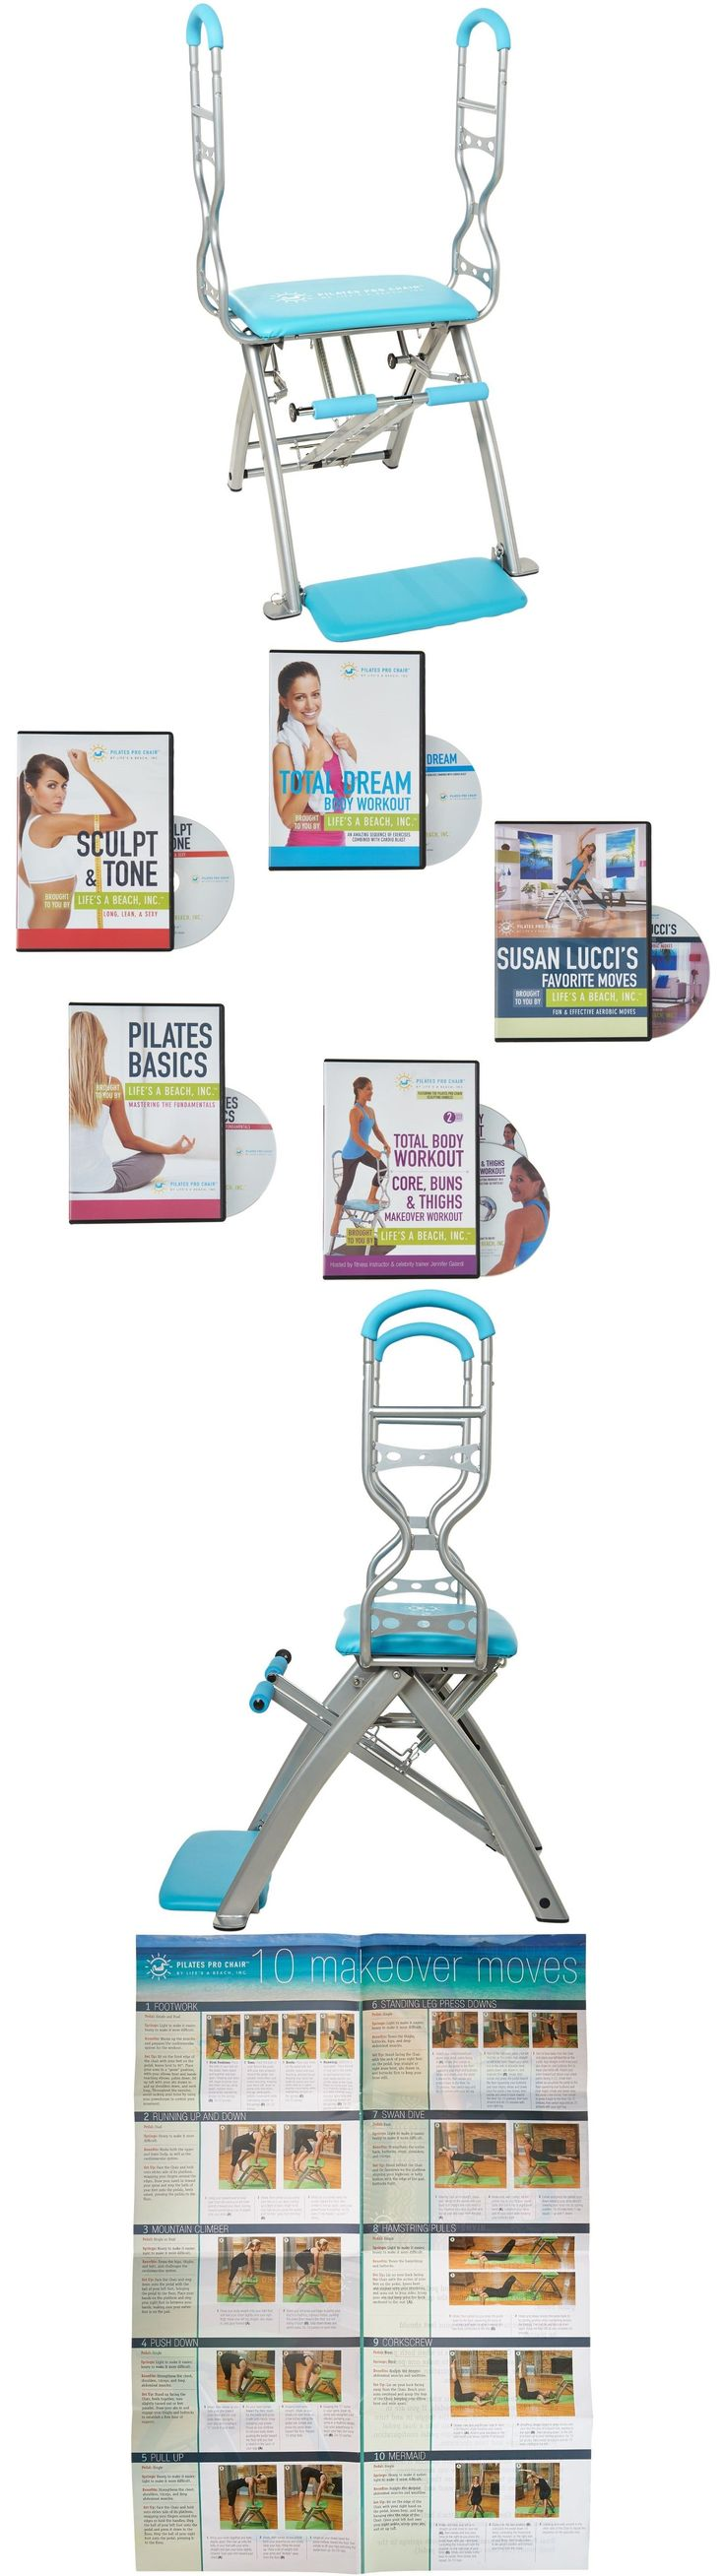 Pilates Tables 179807: Pilates Pro Chair Max With Sculpting Handles By Life S A Beach Six Workout Dvds -> BUY IT NOW ONLY: $359.98 on eBay!